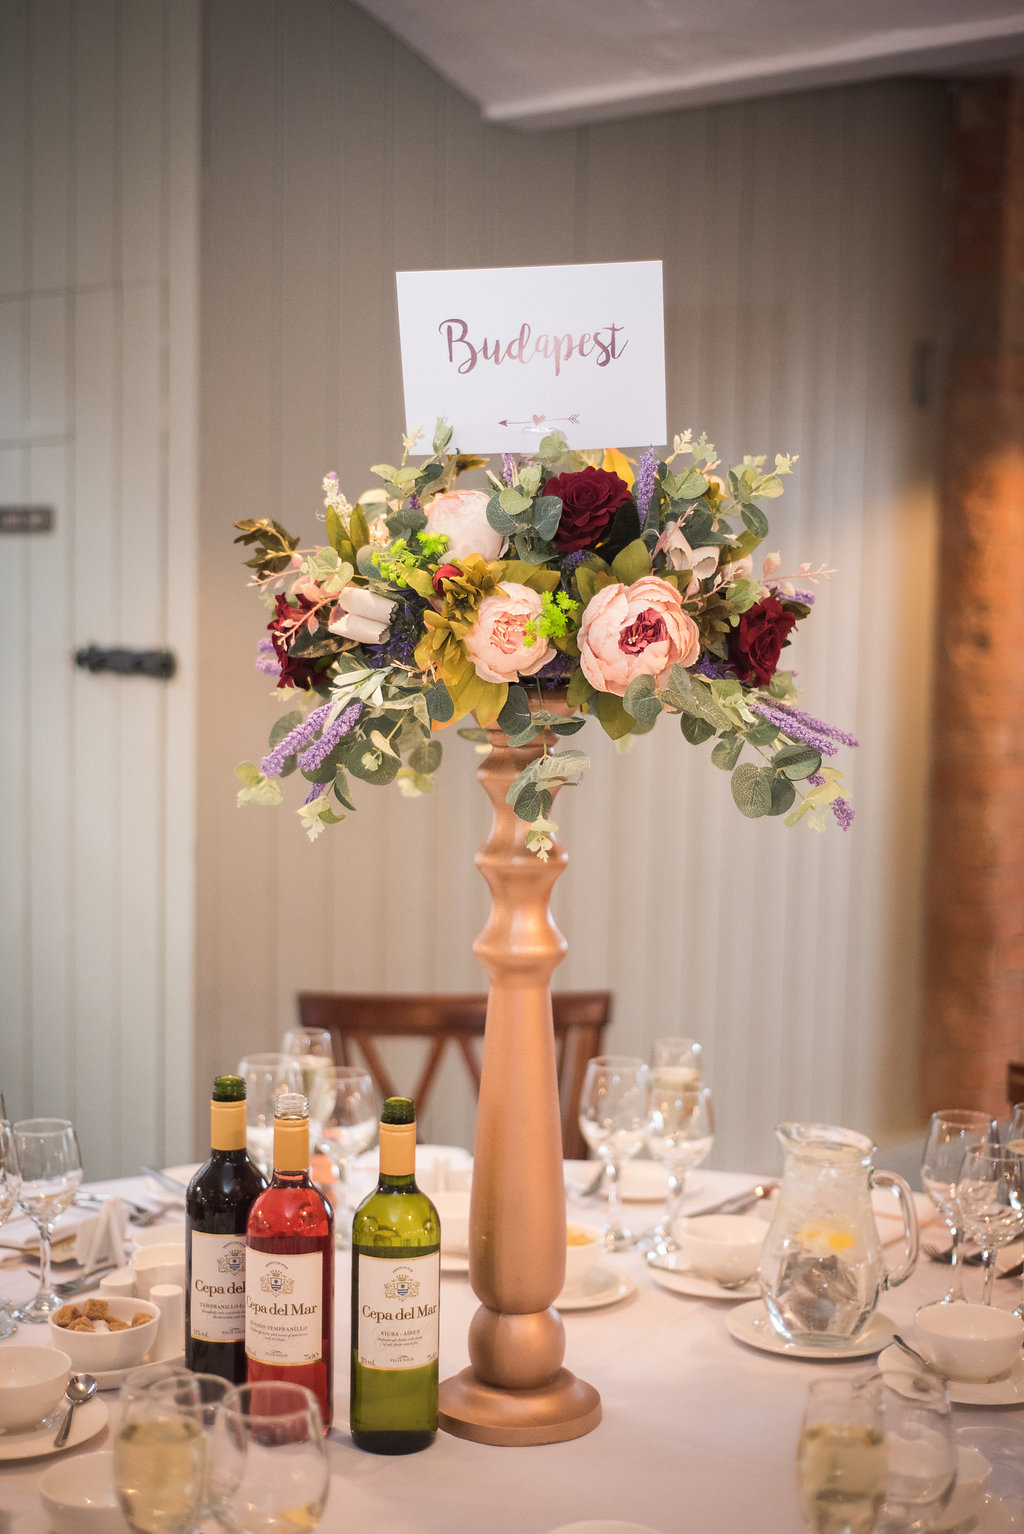 Copper and floral wedding centrepiec